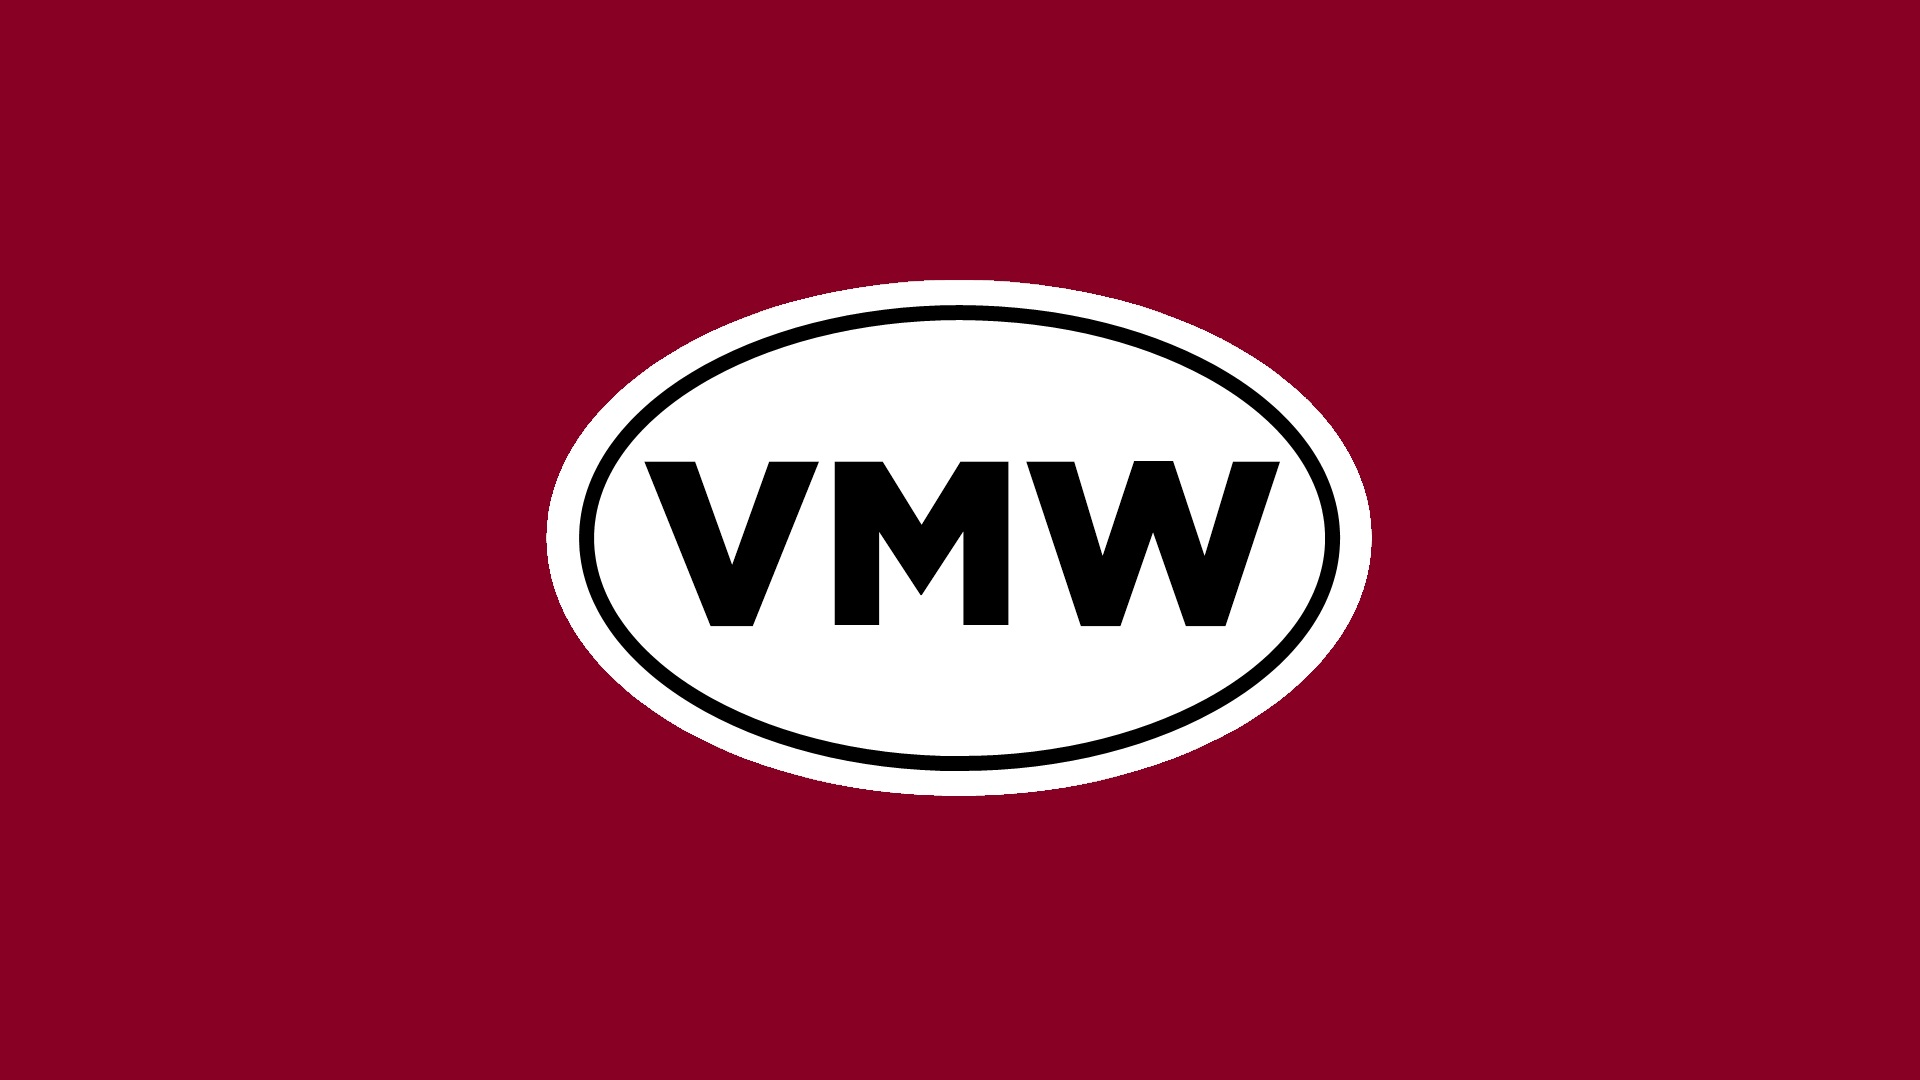 plain_vmware_red1_vmw_sticker